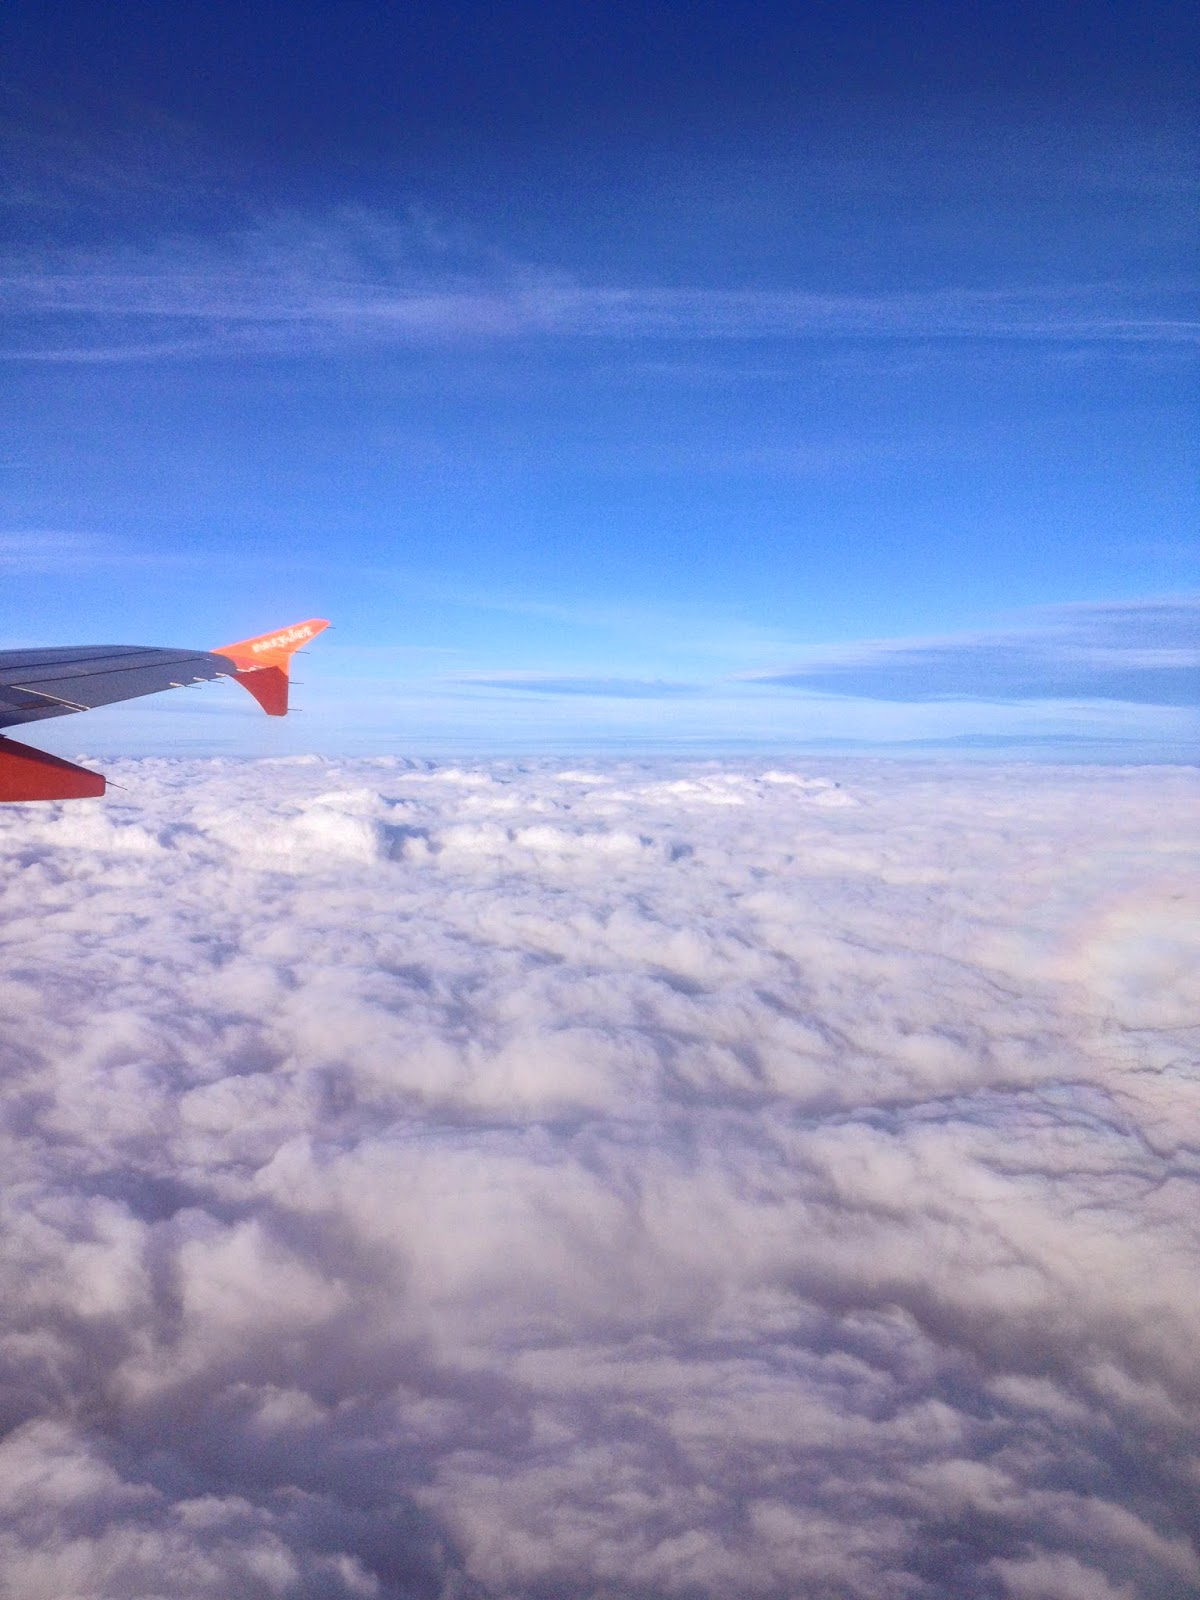 easyjet to barcelona april